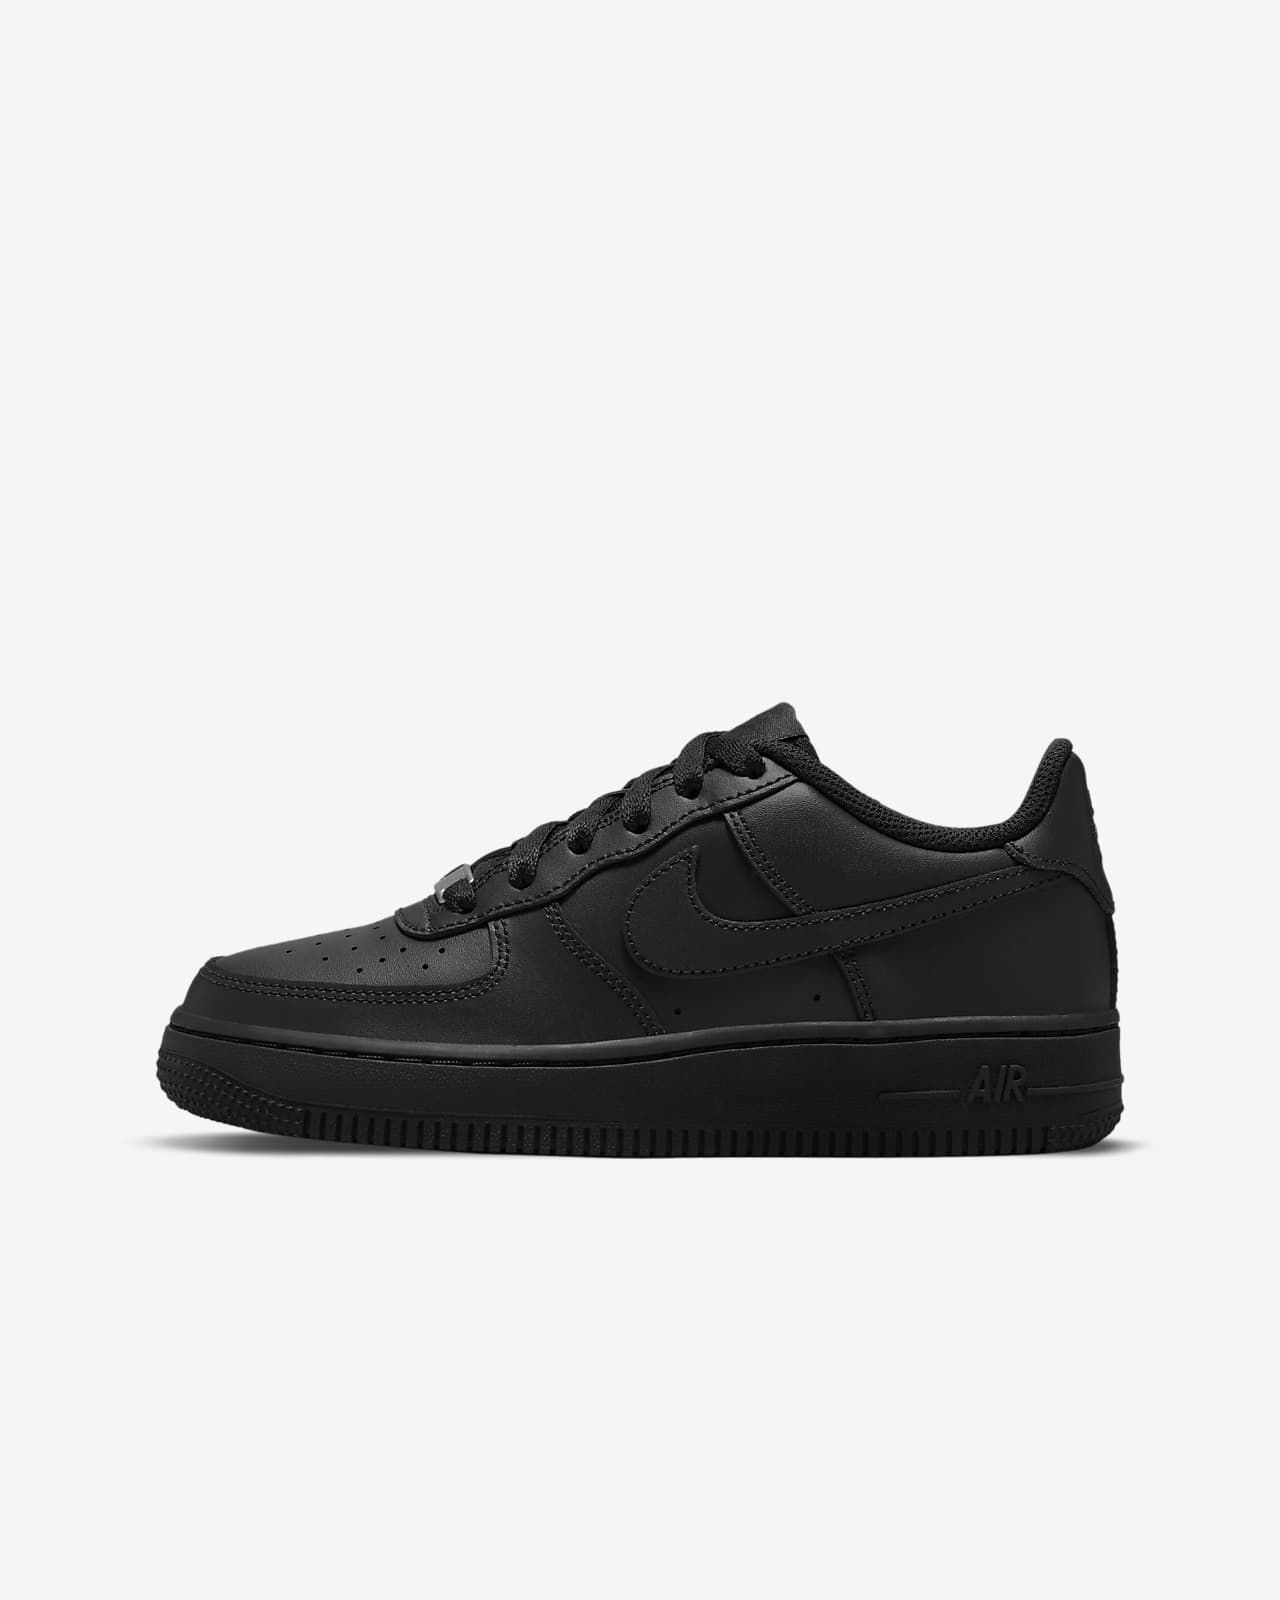 Nike Air Force 1 LE Older Kids' Shoe